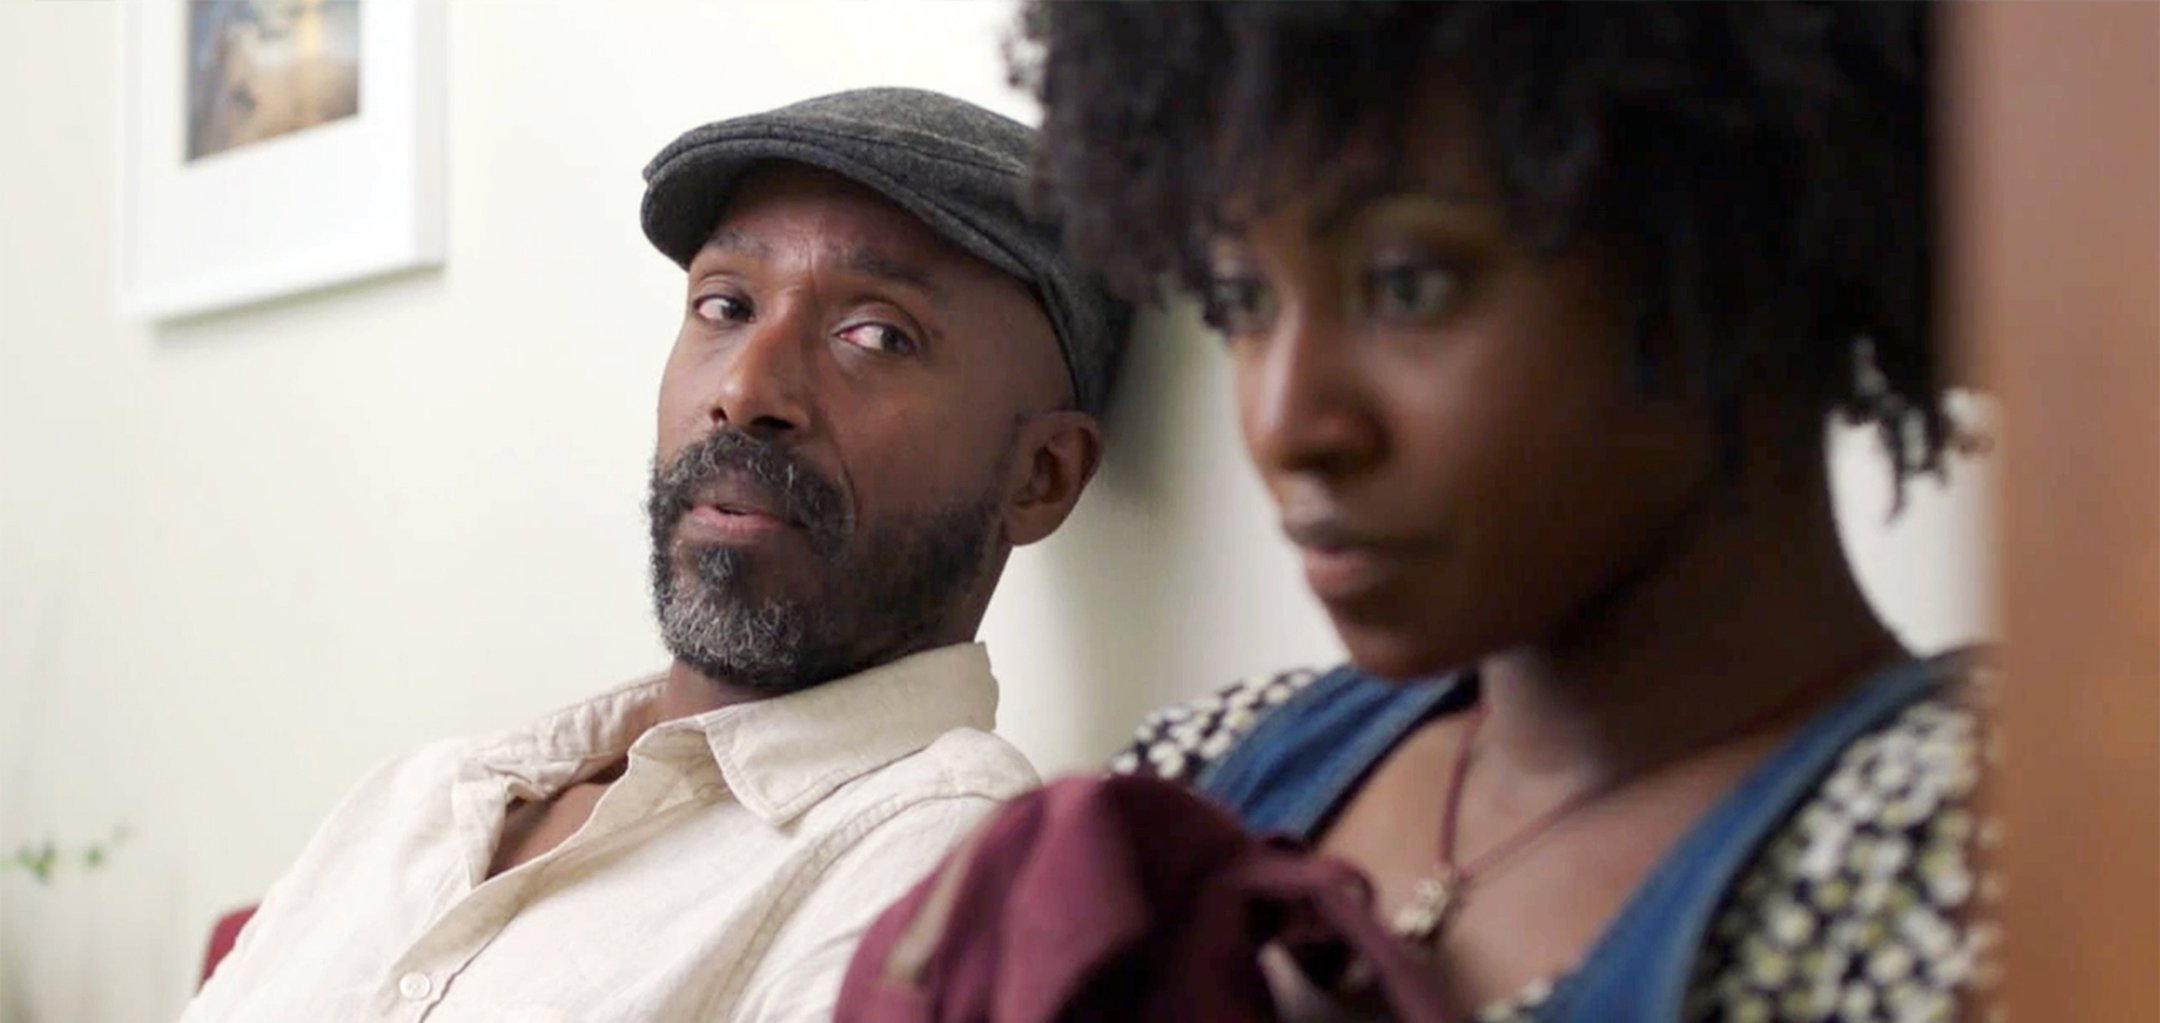 Ntare Mwine looks at Jayme Lawson in a still from Farewell Amor (2020)